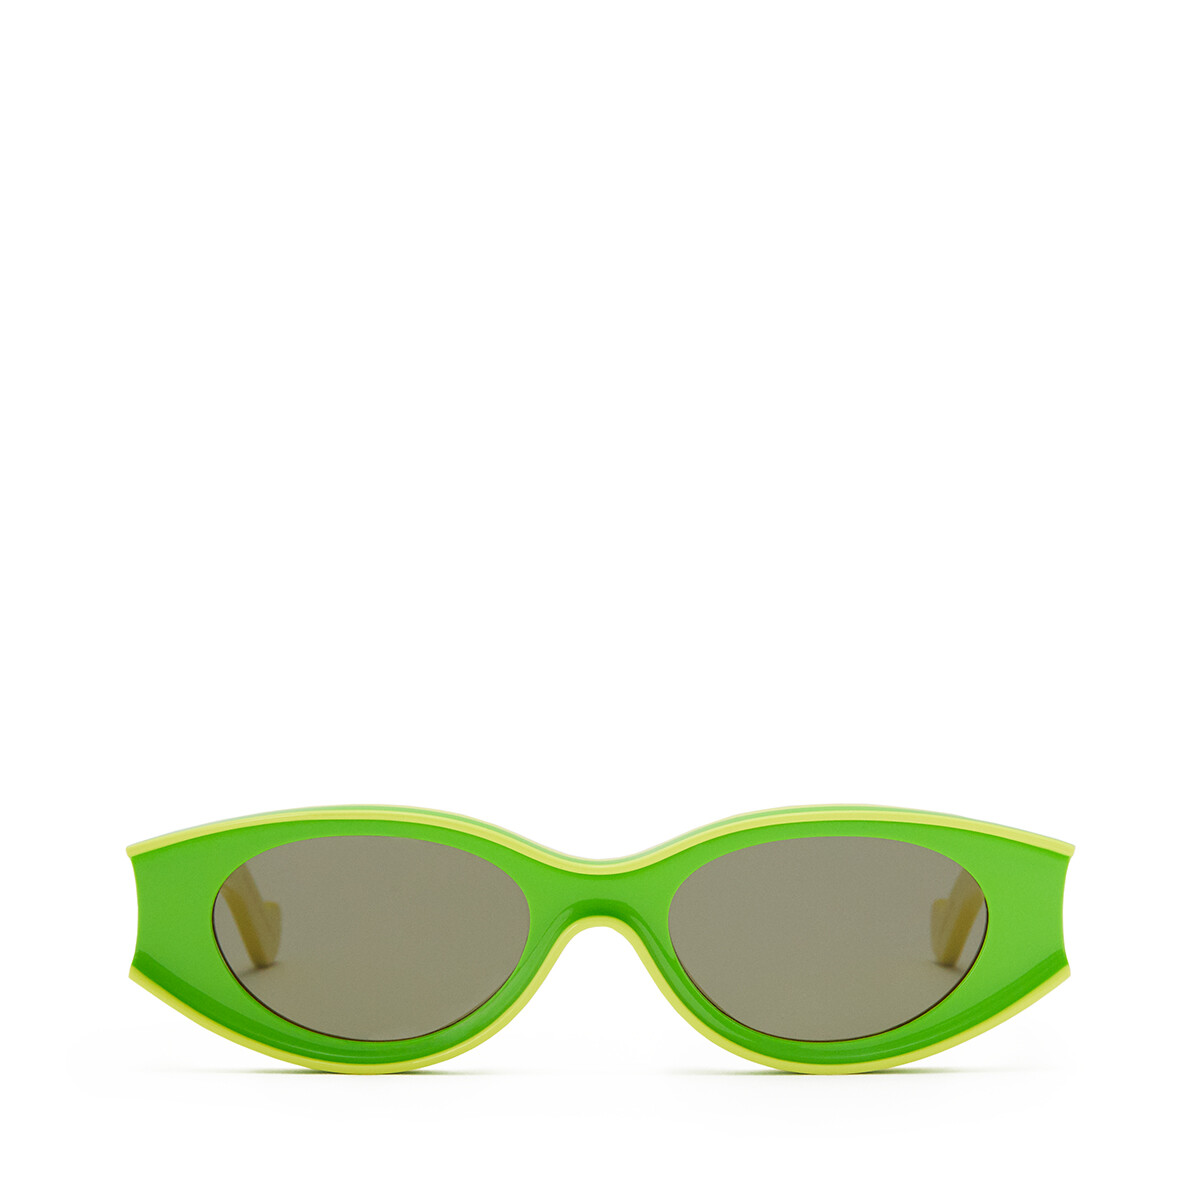 LOEWE Small Paula's Ibiza Sunglasses In Acetate Neon Green/Neon Yellow front